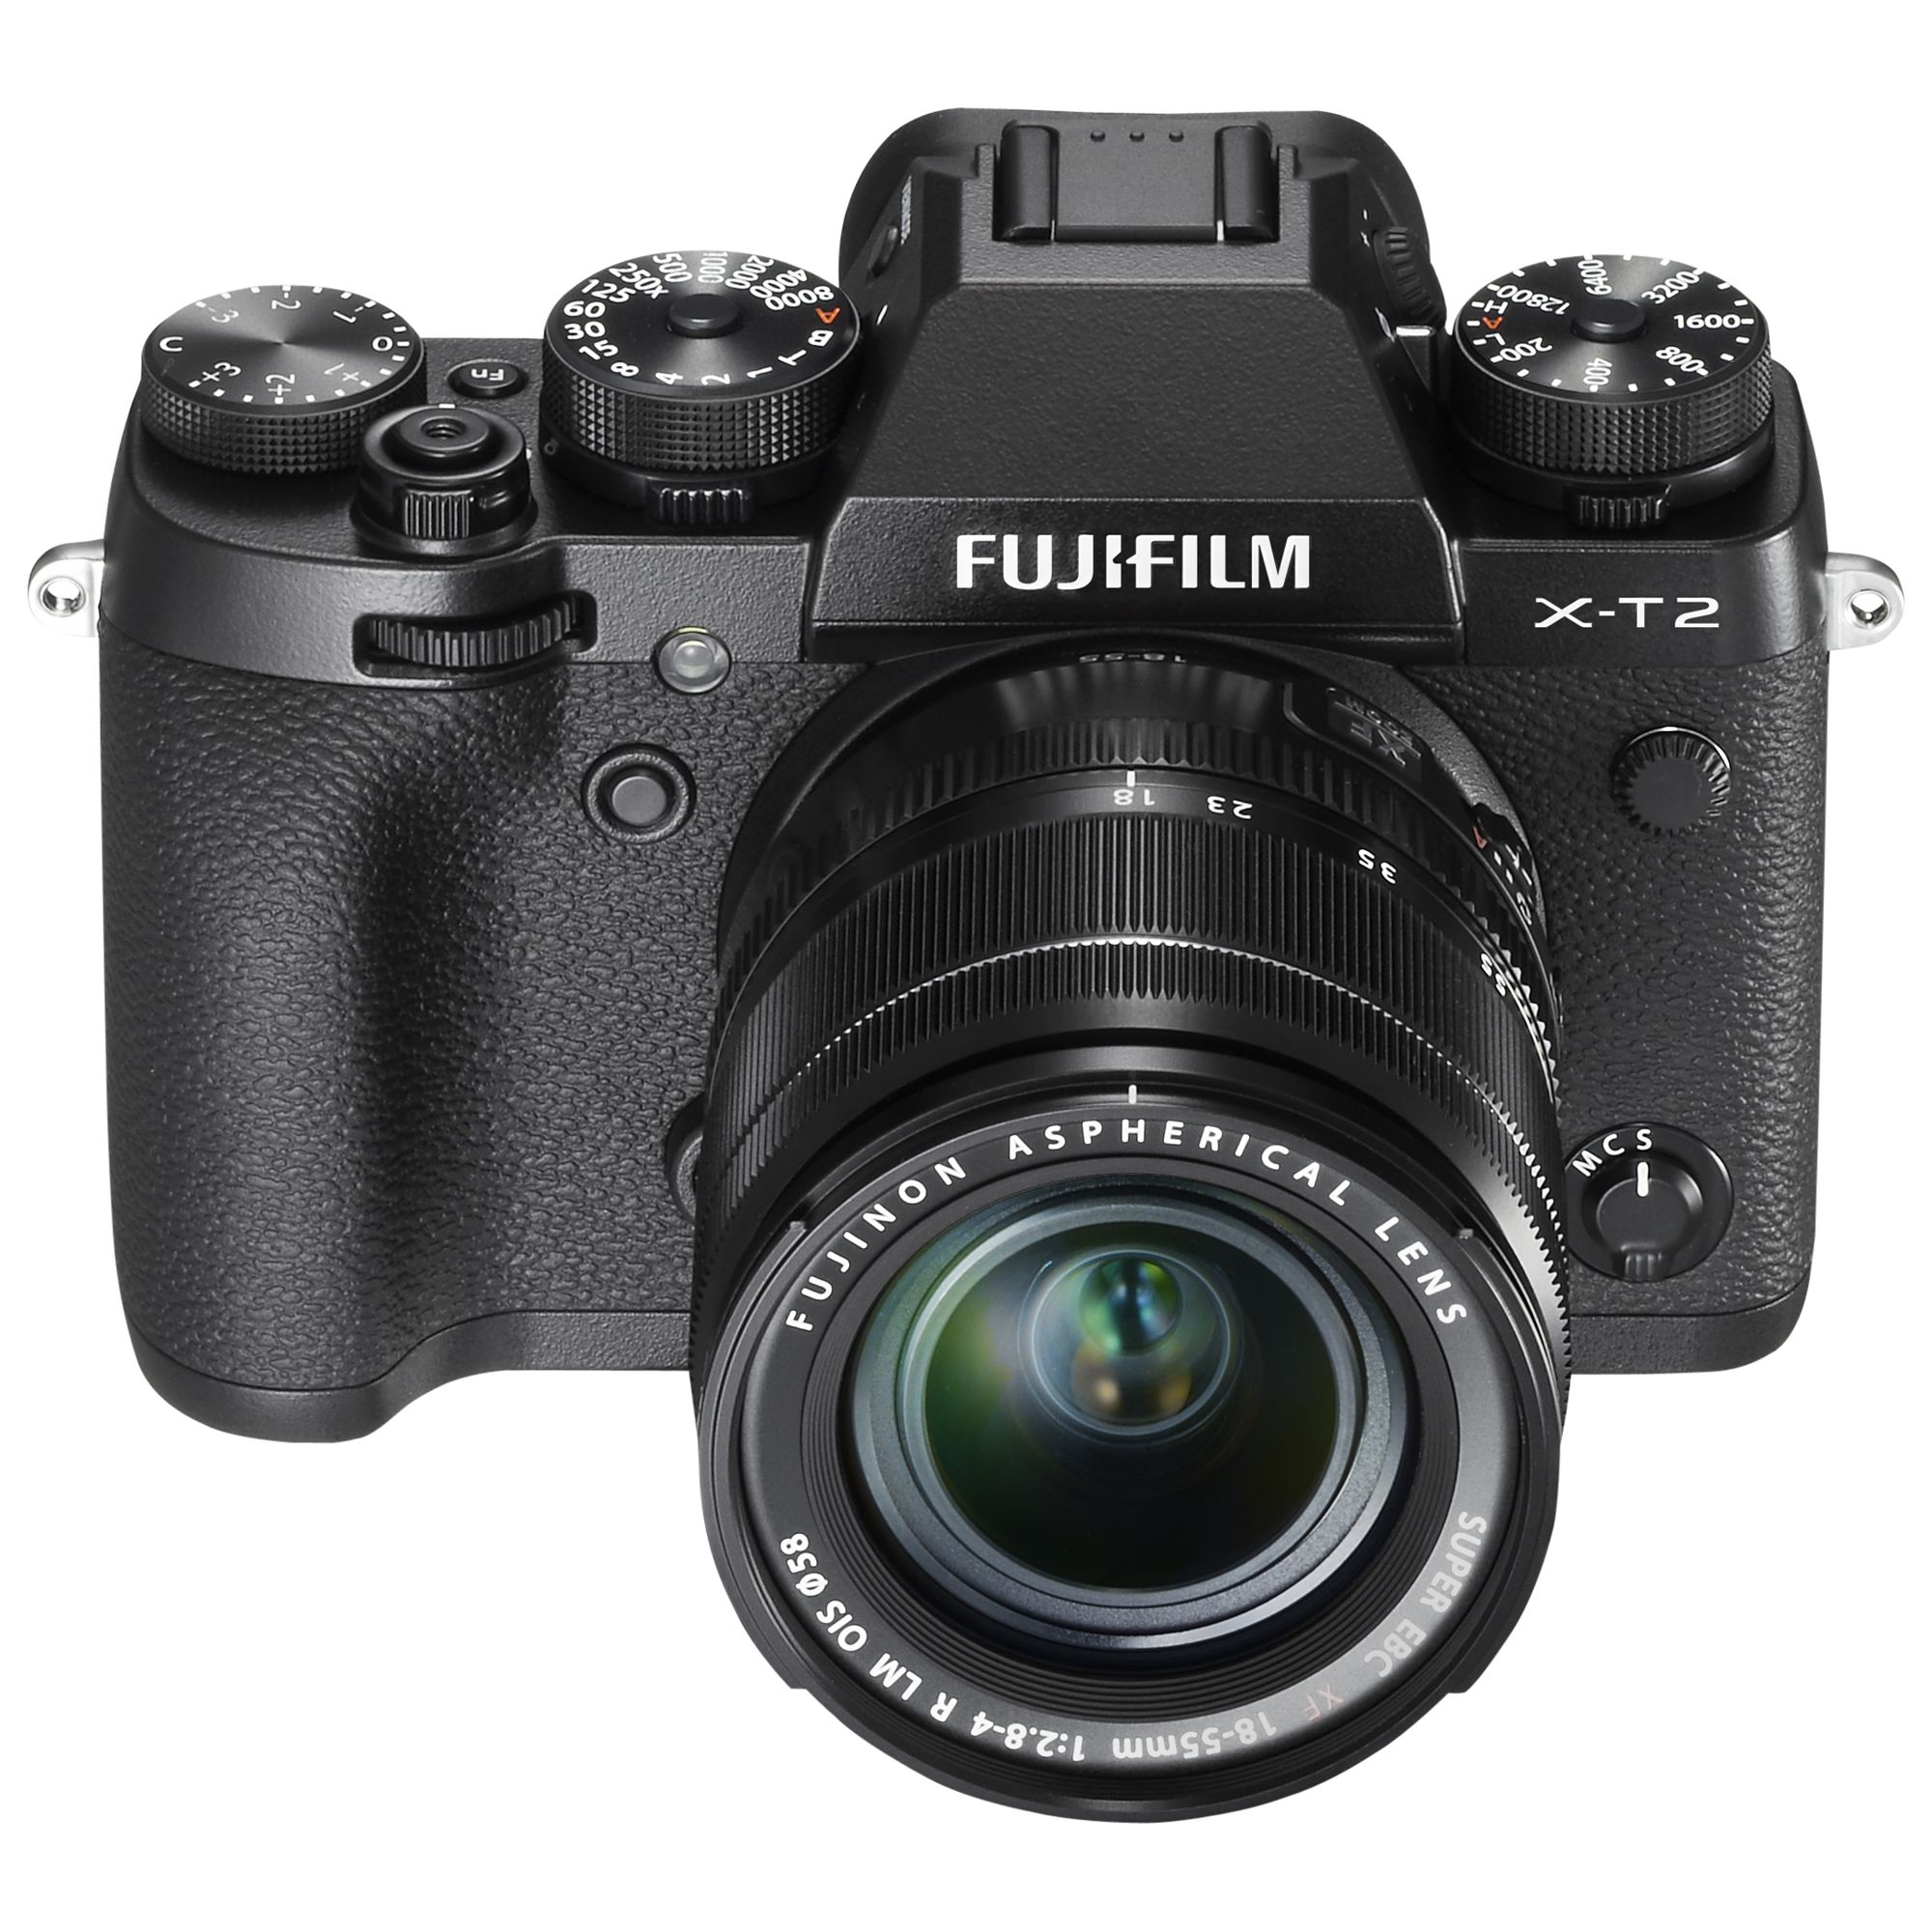 "Fujifilm Fujifilm X-T2 Compact System Camera with XF 18-55mm IS Lens, 4K Ultra HD, 24.3MP, Wi-Fi, OLED EVF, 3"" Tiltable LCD Screen"